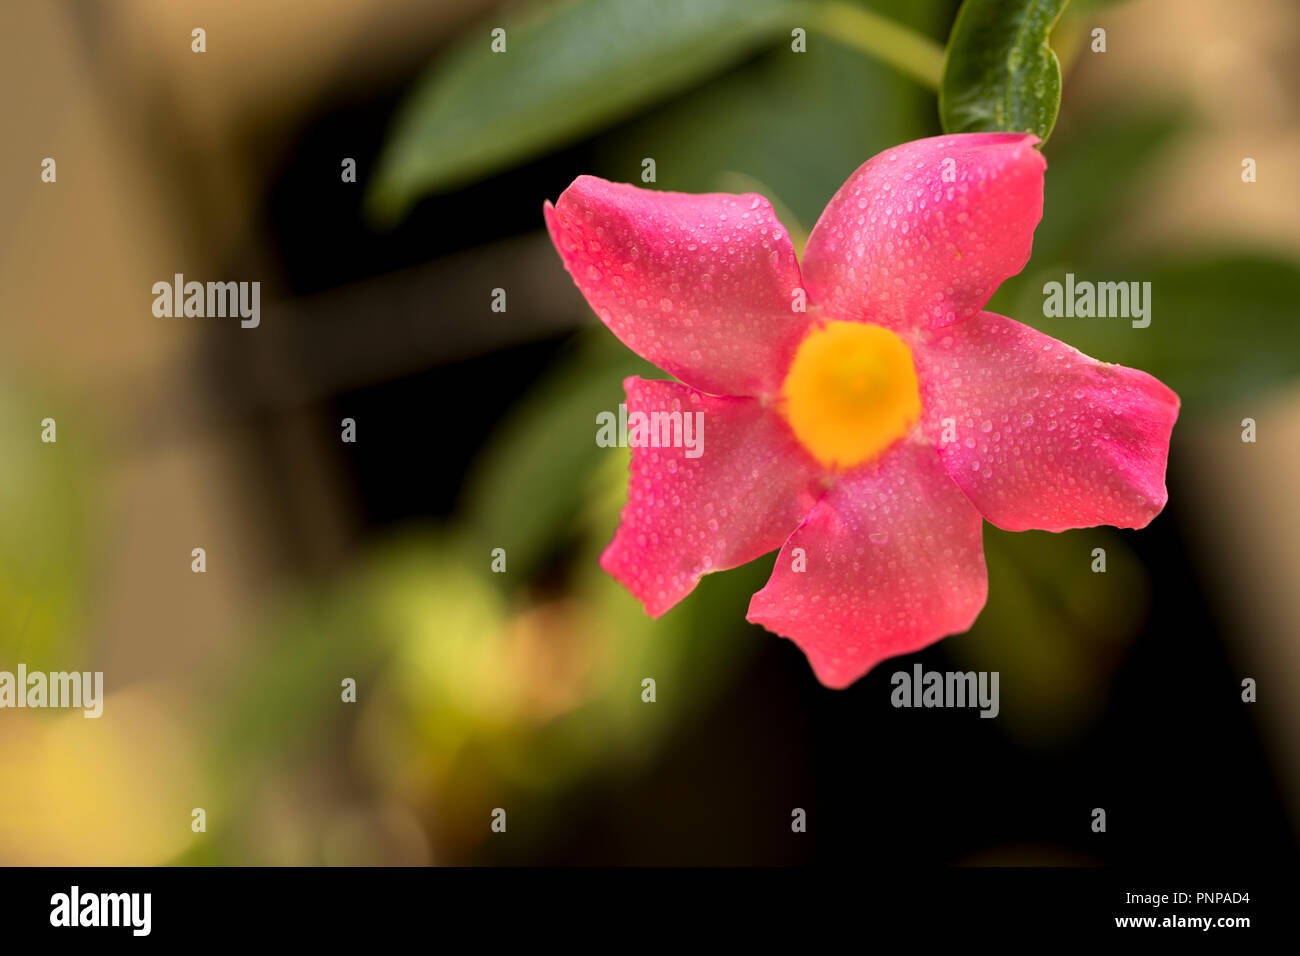 Small pink flower with a yellow inner circle with water droplets - Stock Image